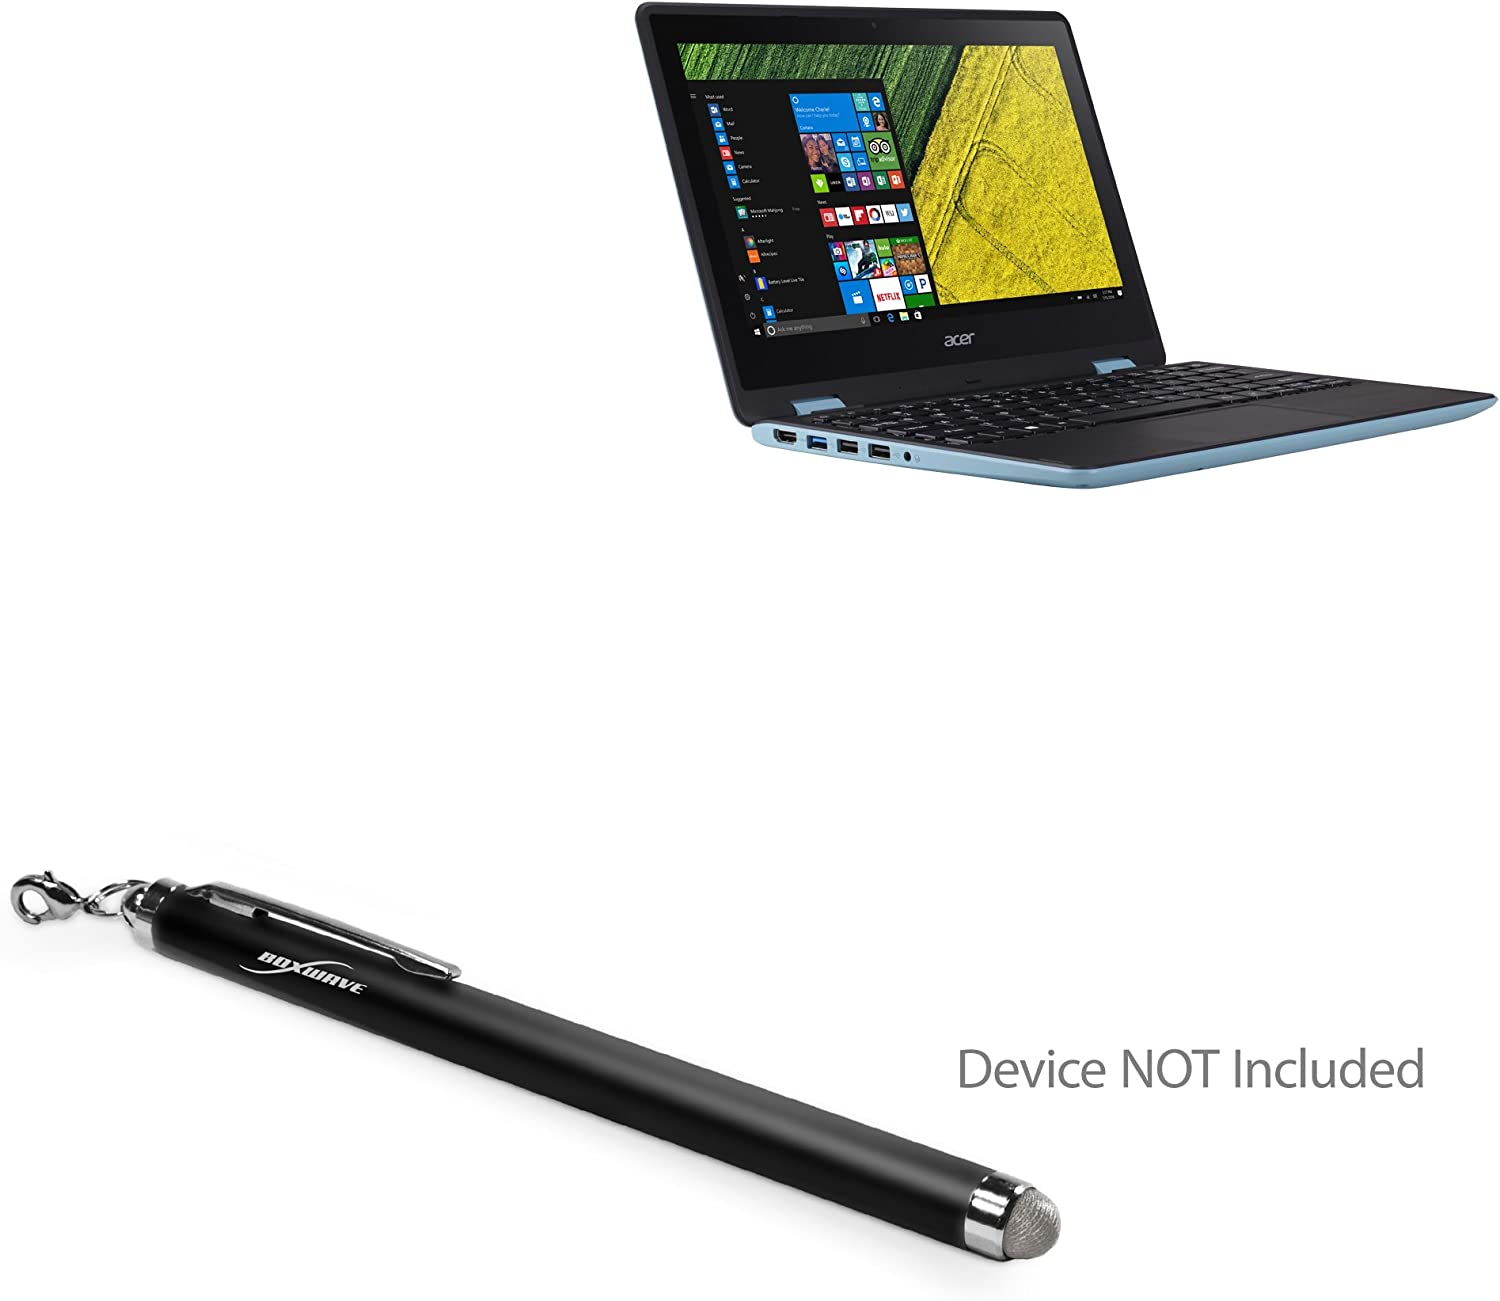 Acer Spin 5 Stylus Pen, BoxWave [EverTouch Capacitive Stylus] Fiber Tip Capacitive Stylus Pen for Acer Spin 5 - Jet Black